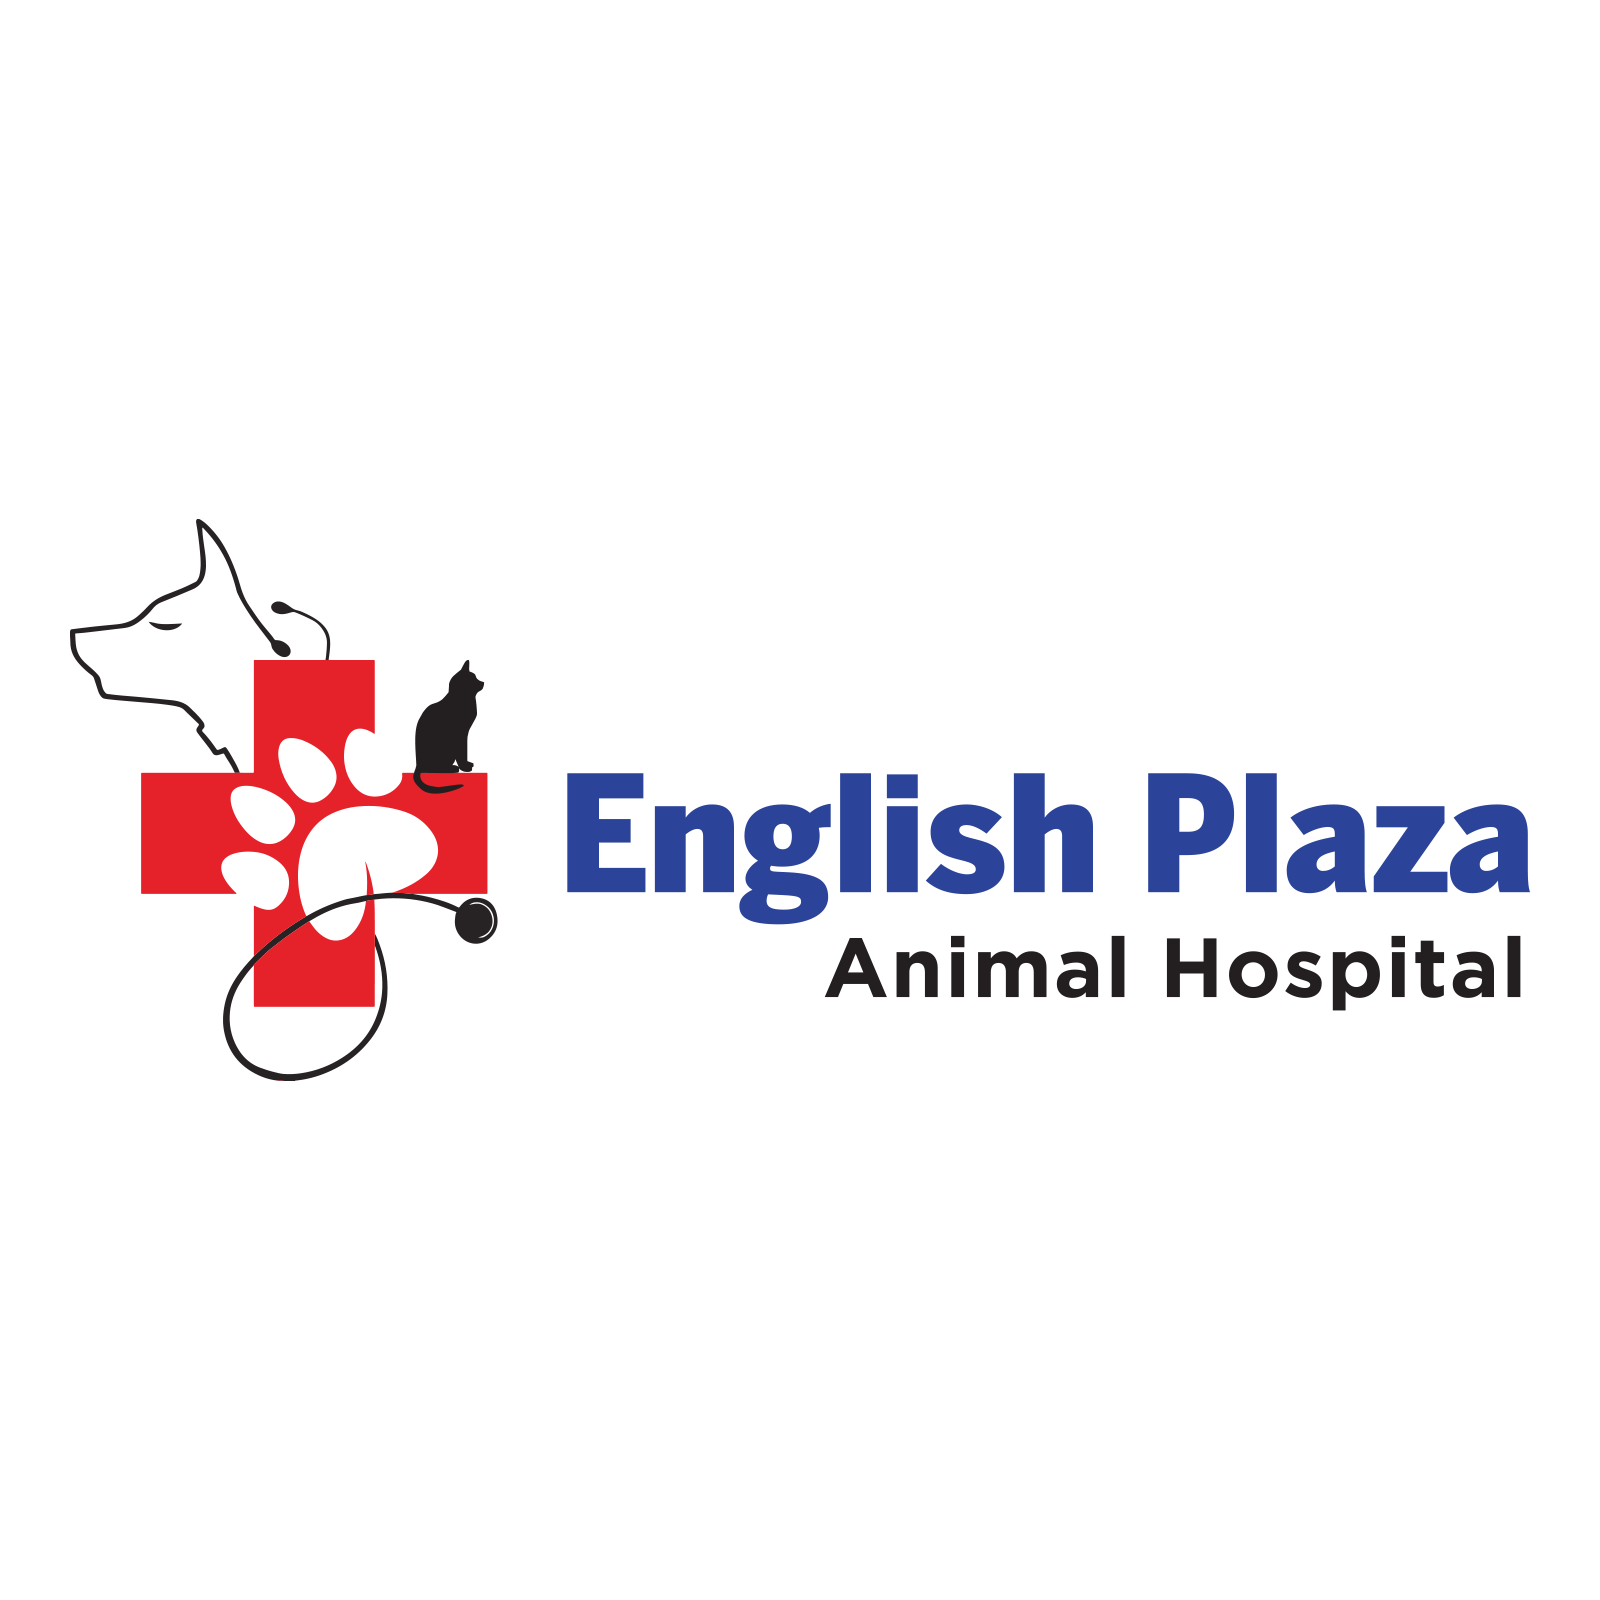 English Plaza Animal Hospital